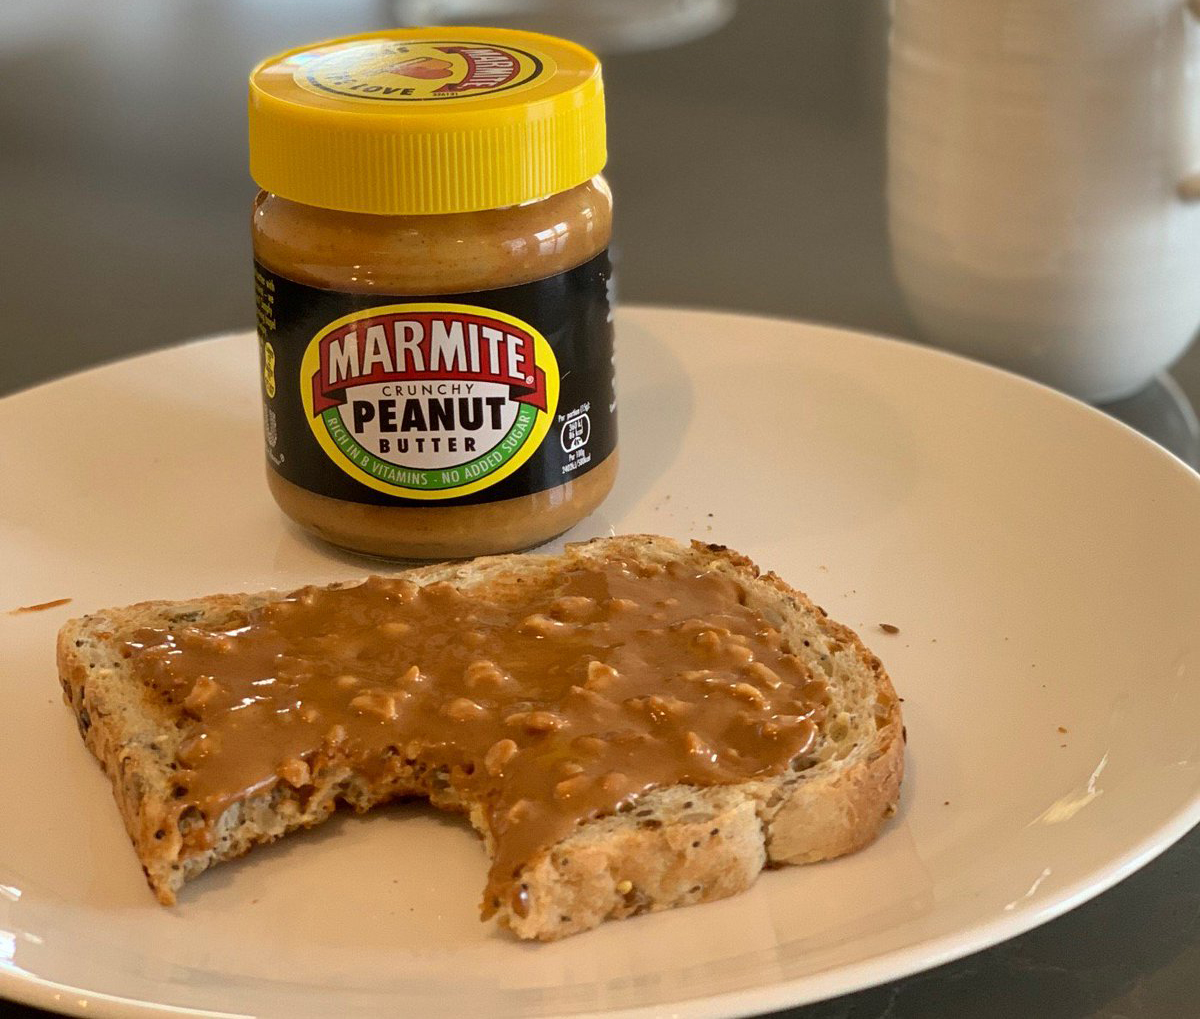 Marmite peanut butter is spread on toast.